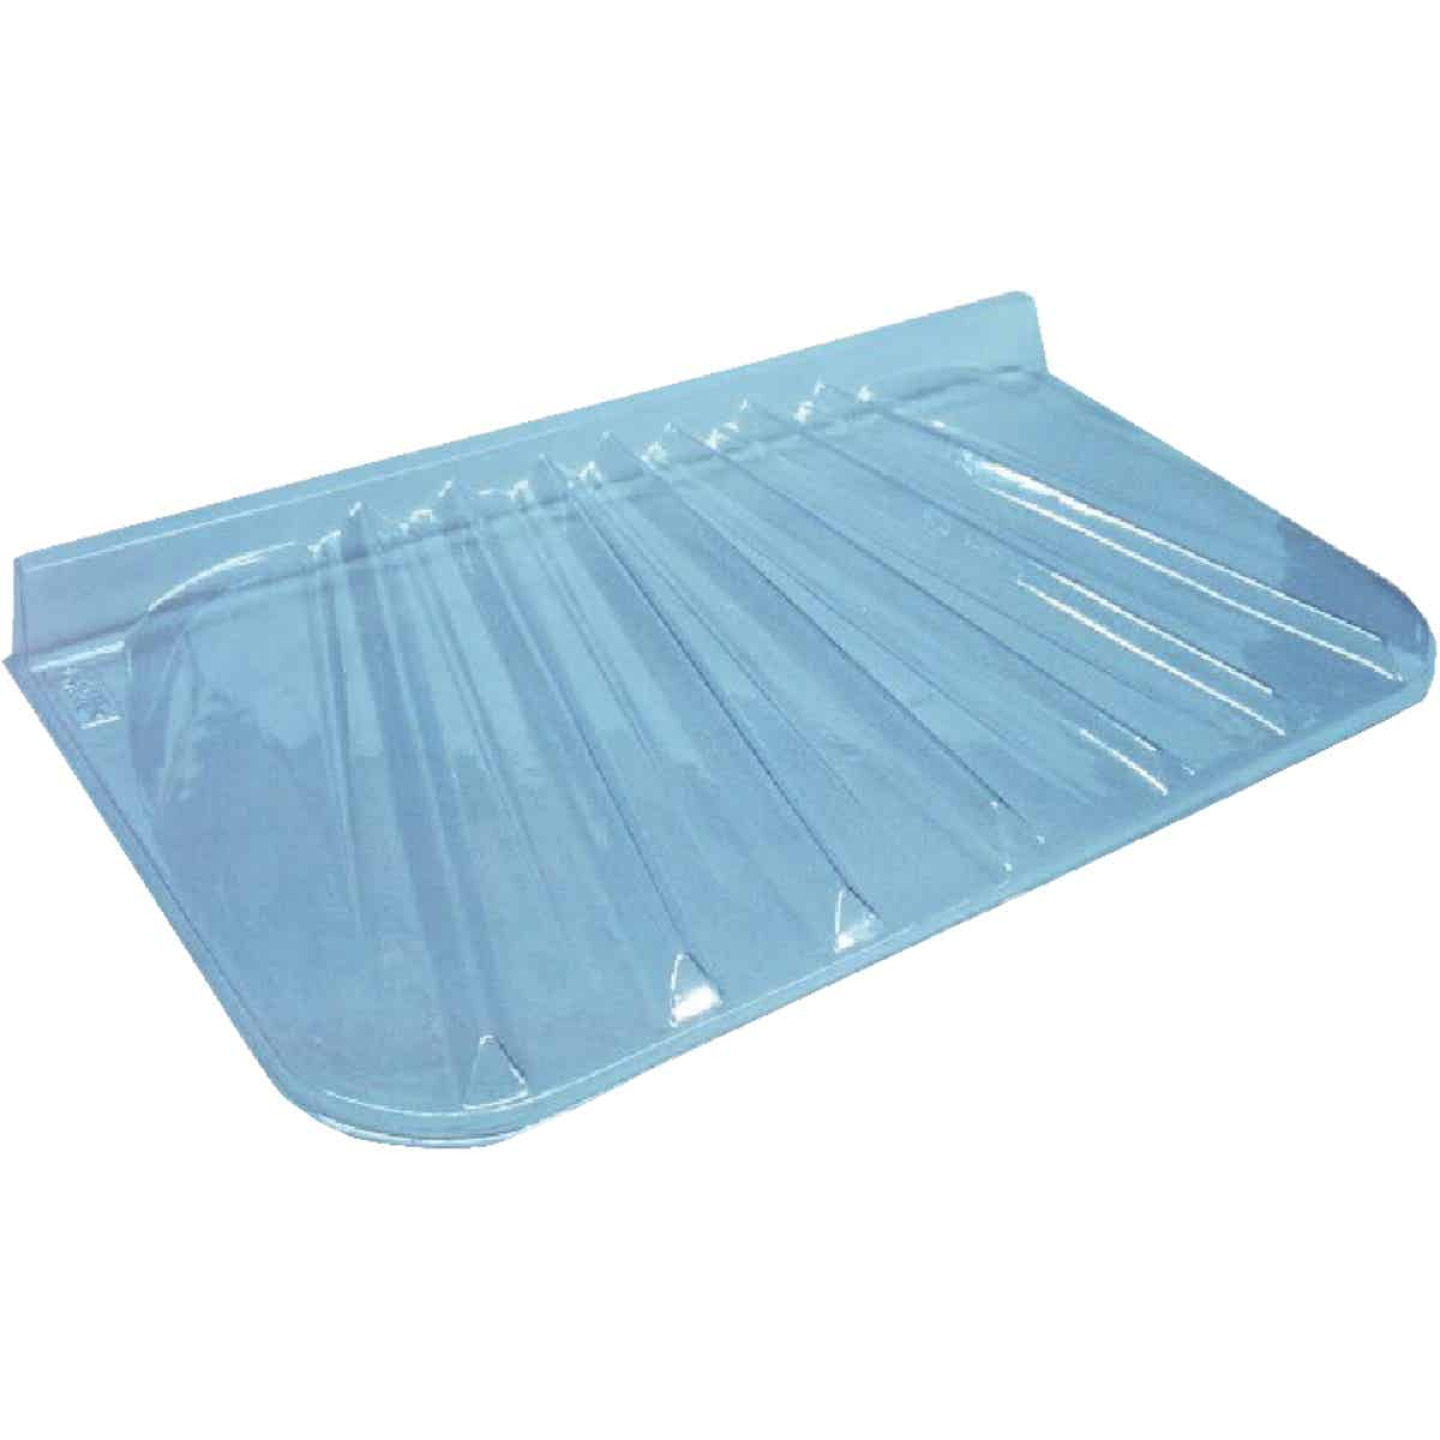 MacCourt 44 In. x 25 In. Rectangular Low Profile Plastic Window Well Cover Image 1